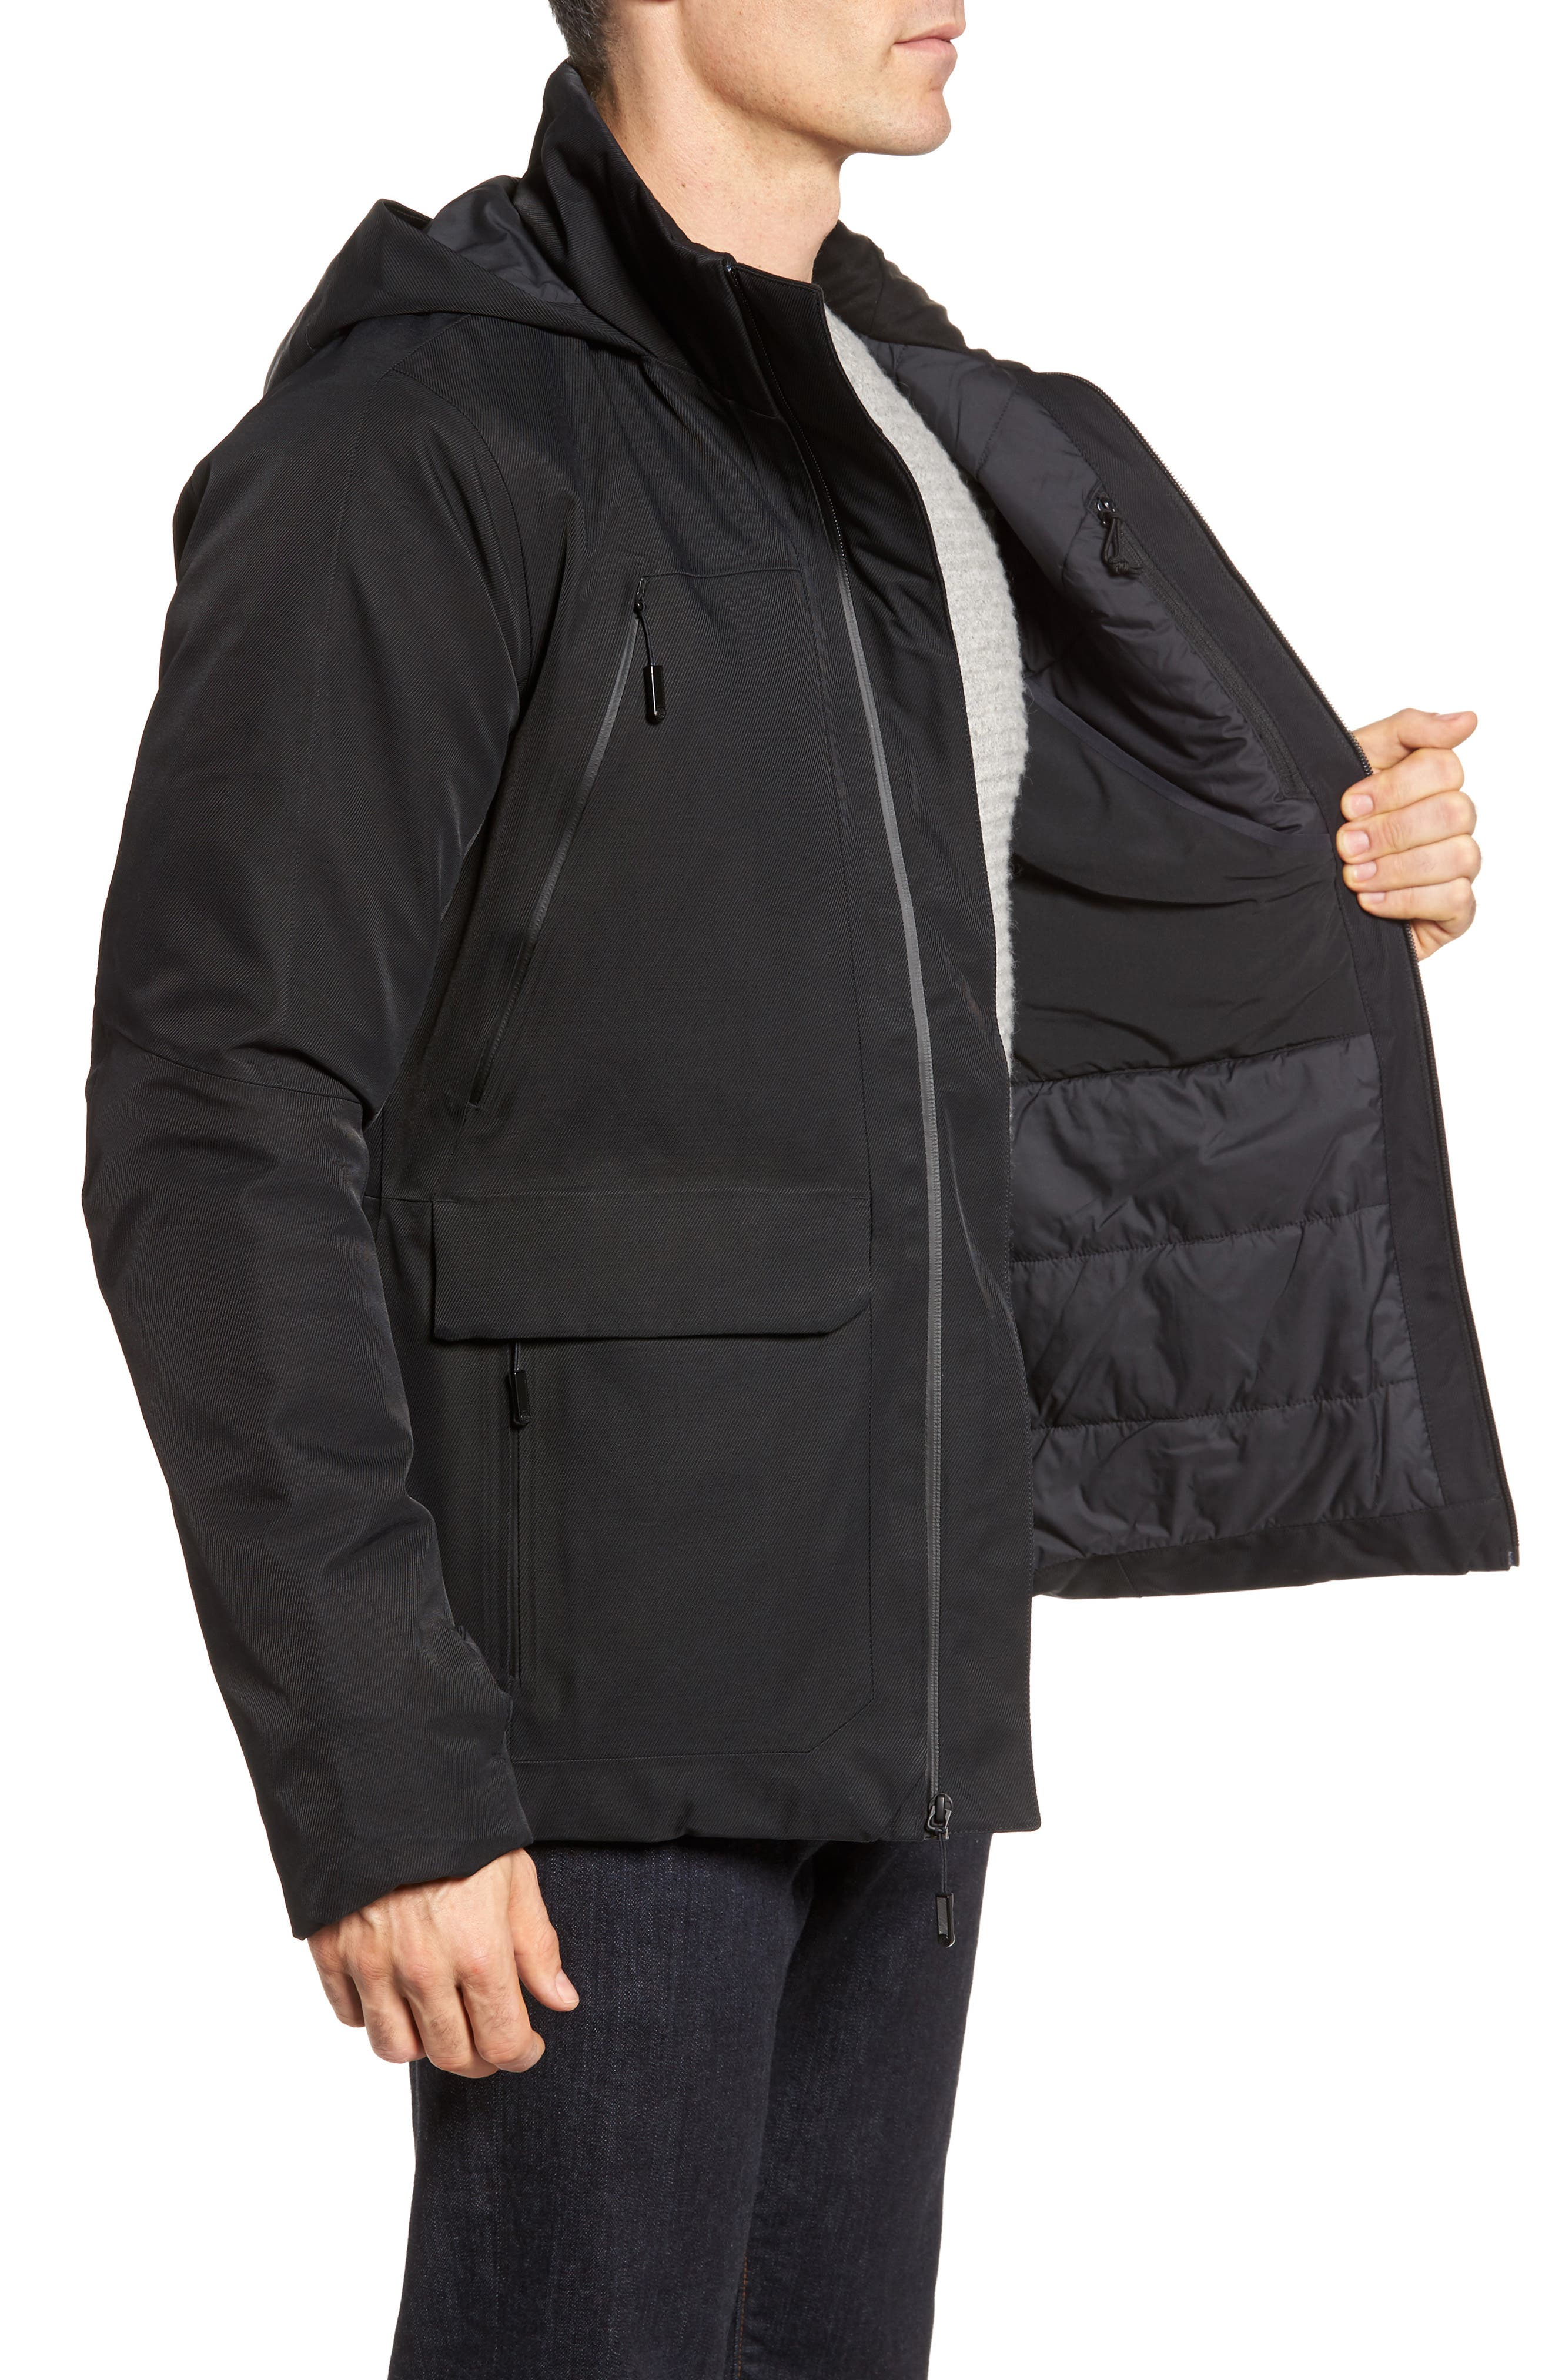 Cryos Waterproof Gore-Tex<sup>®</sup> PrimaLoft<sup>®</sup> Gold Insulated Jacket,                             Alternate thumbnail 3, color,                             Black